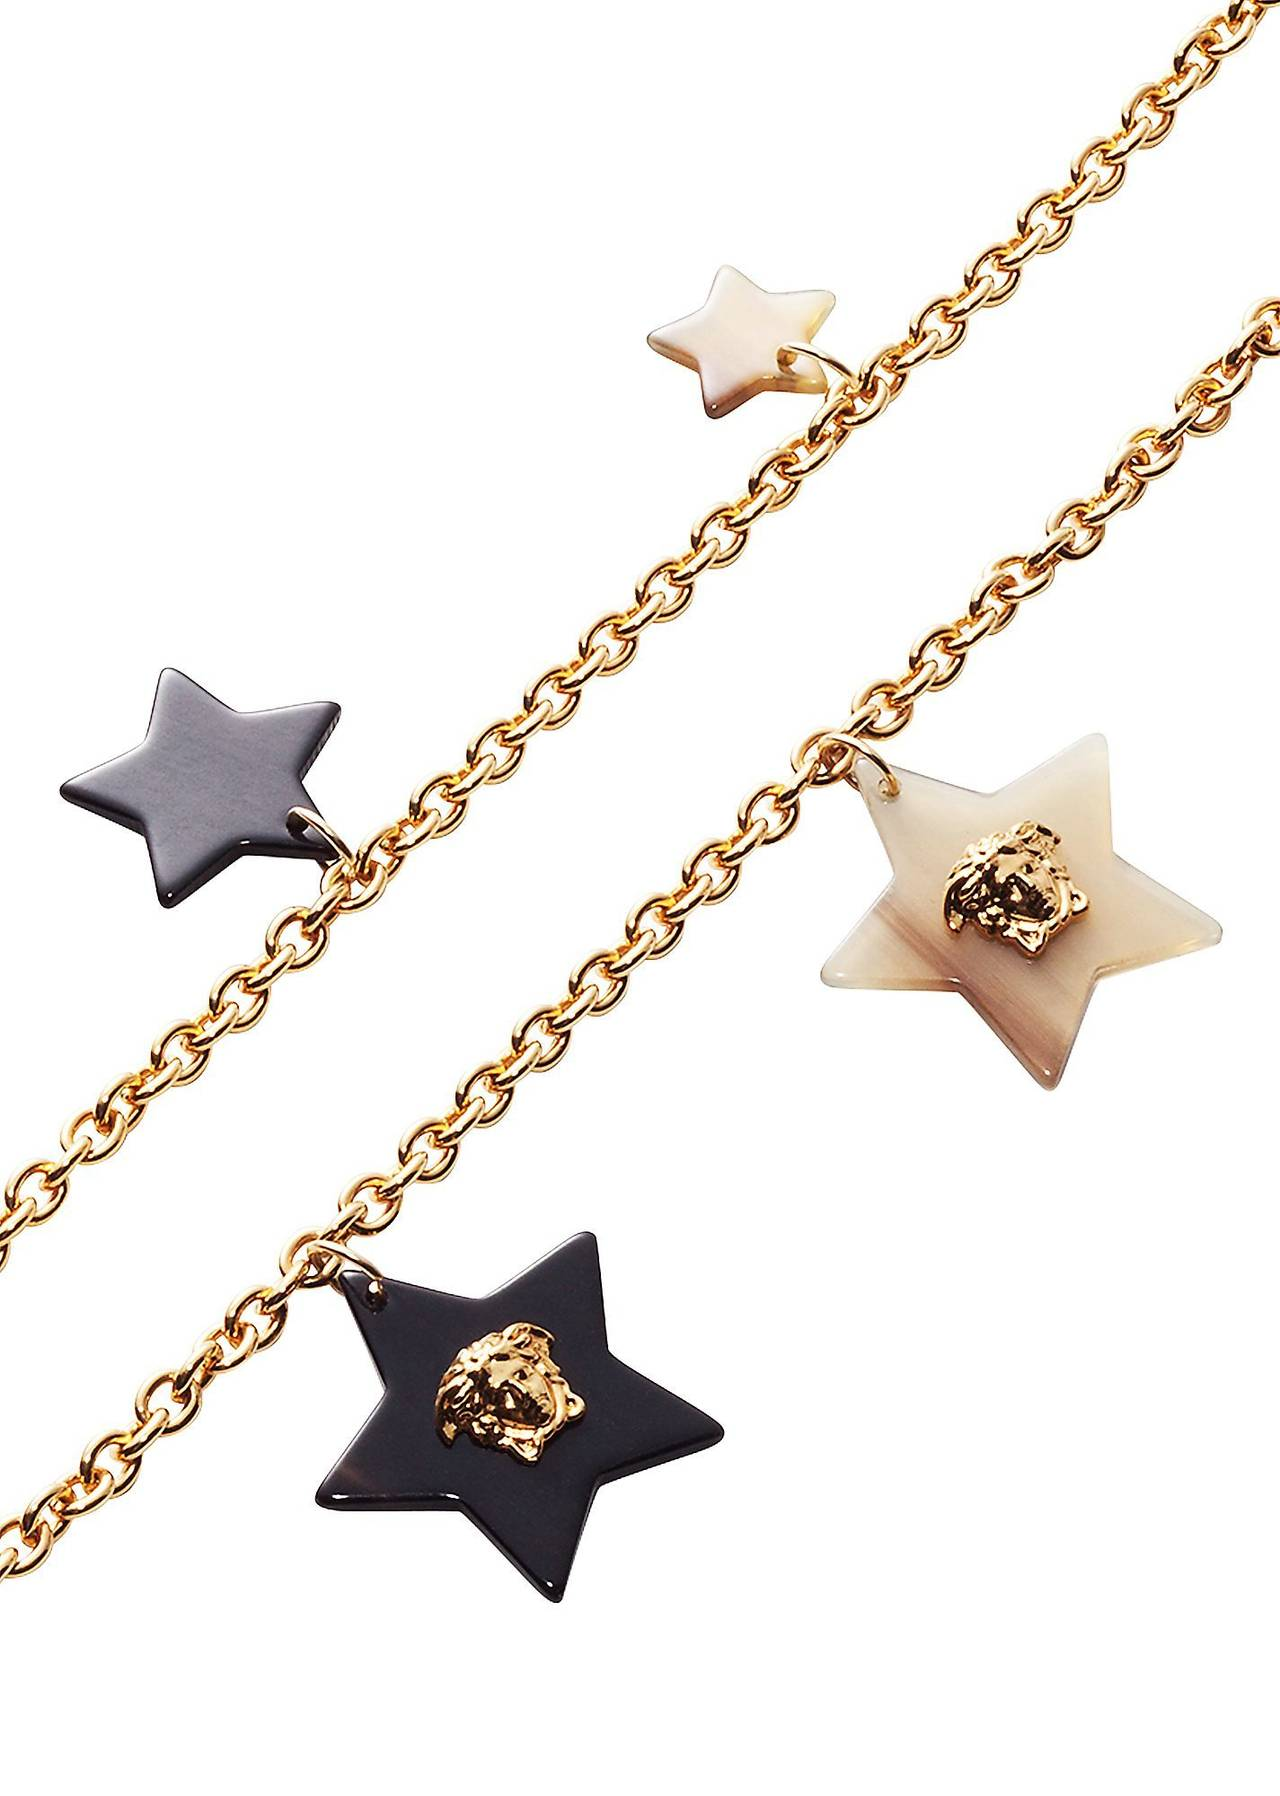 New Versace Gold Star Medusa Charm Chain Necklace 2